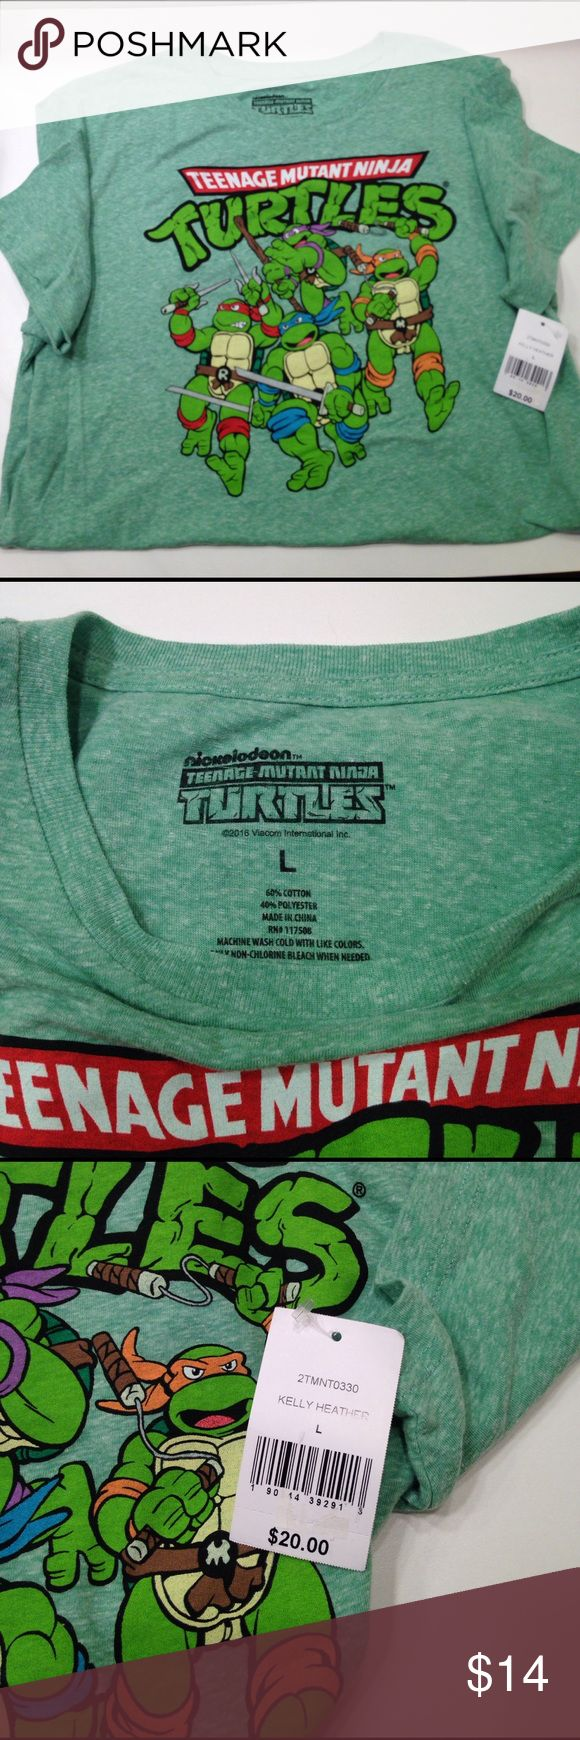 "NWT Nickelodeon Ninja Turtles t-shirt NWT Nickelodeon Ninja Turtles t-shirt, Kelly Heather, size L unisex, 29"" back length neck to hem, pit to pit flat lay 22"" Nickelodeon Shirts Tees - Short Sleeve"